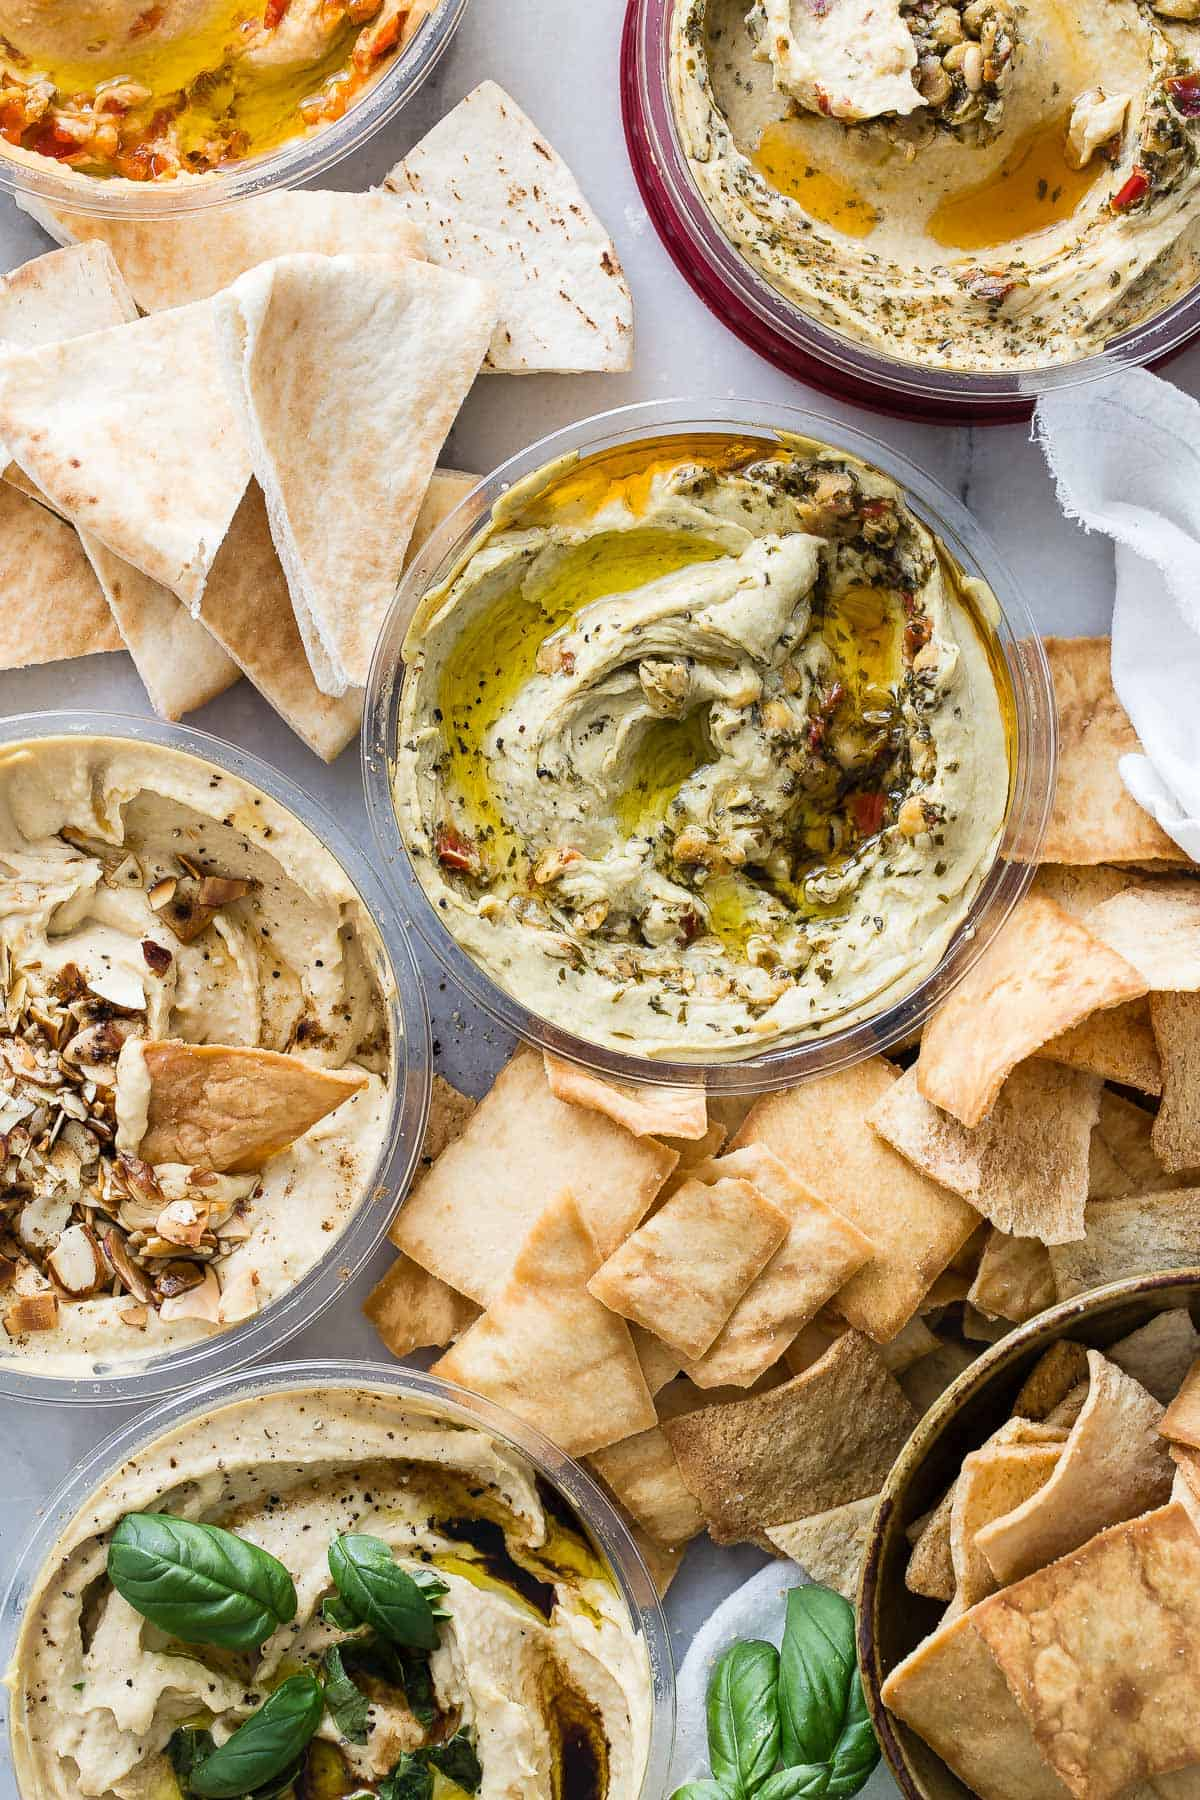 Classic Hummus Made Your Way